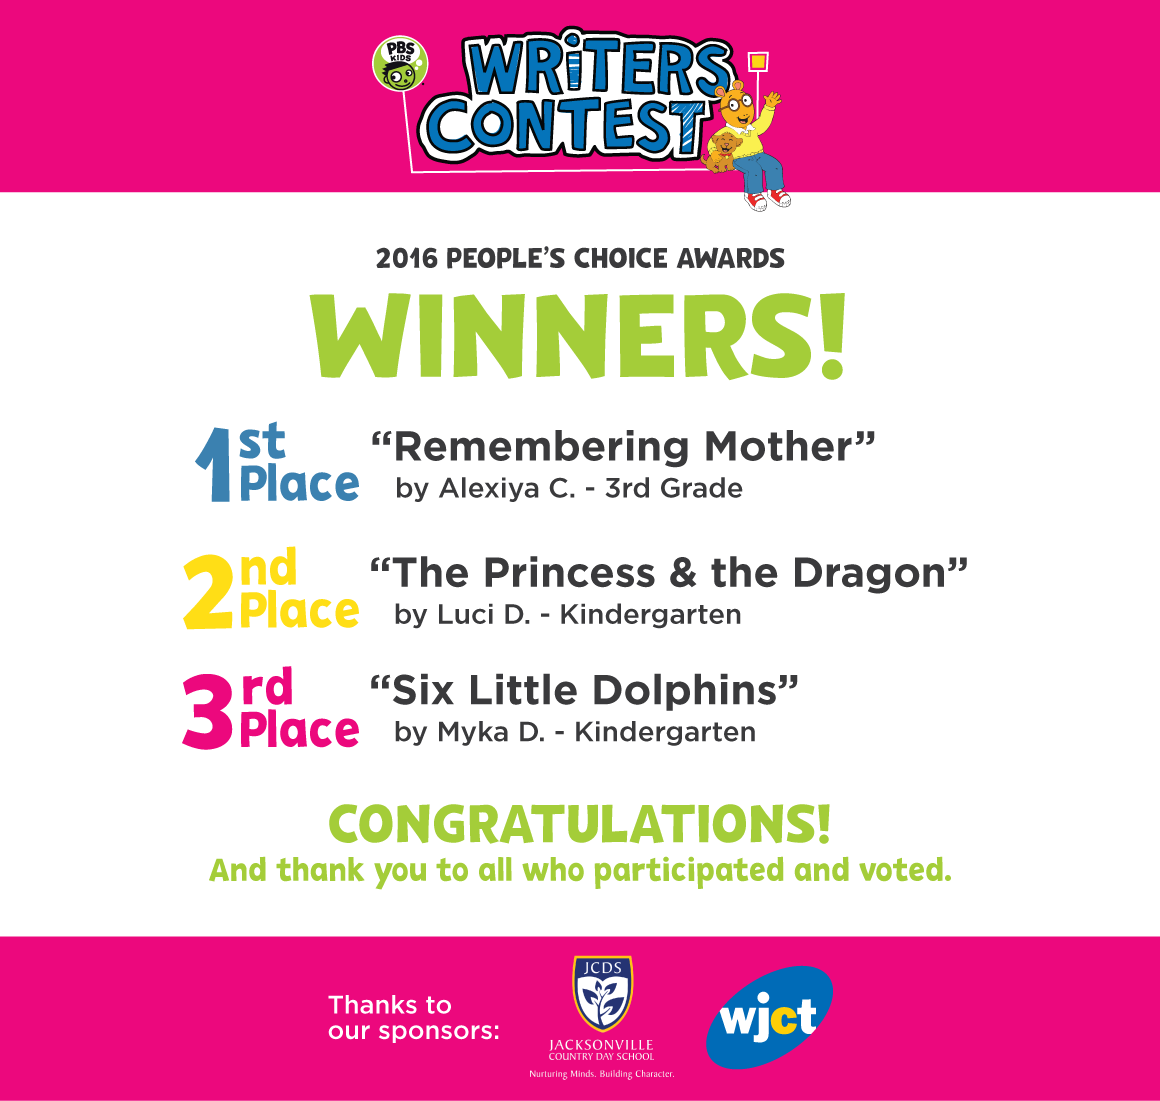 pbs kids writing contest It's time for idaho's 2017 pbs kids writers contest children in grades k-3 are  asked to write and illustrate their own stories and enter them into.